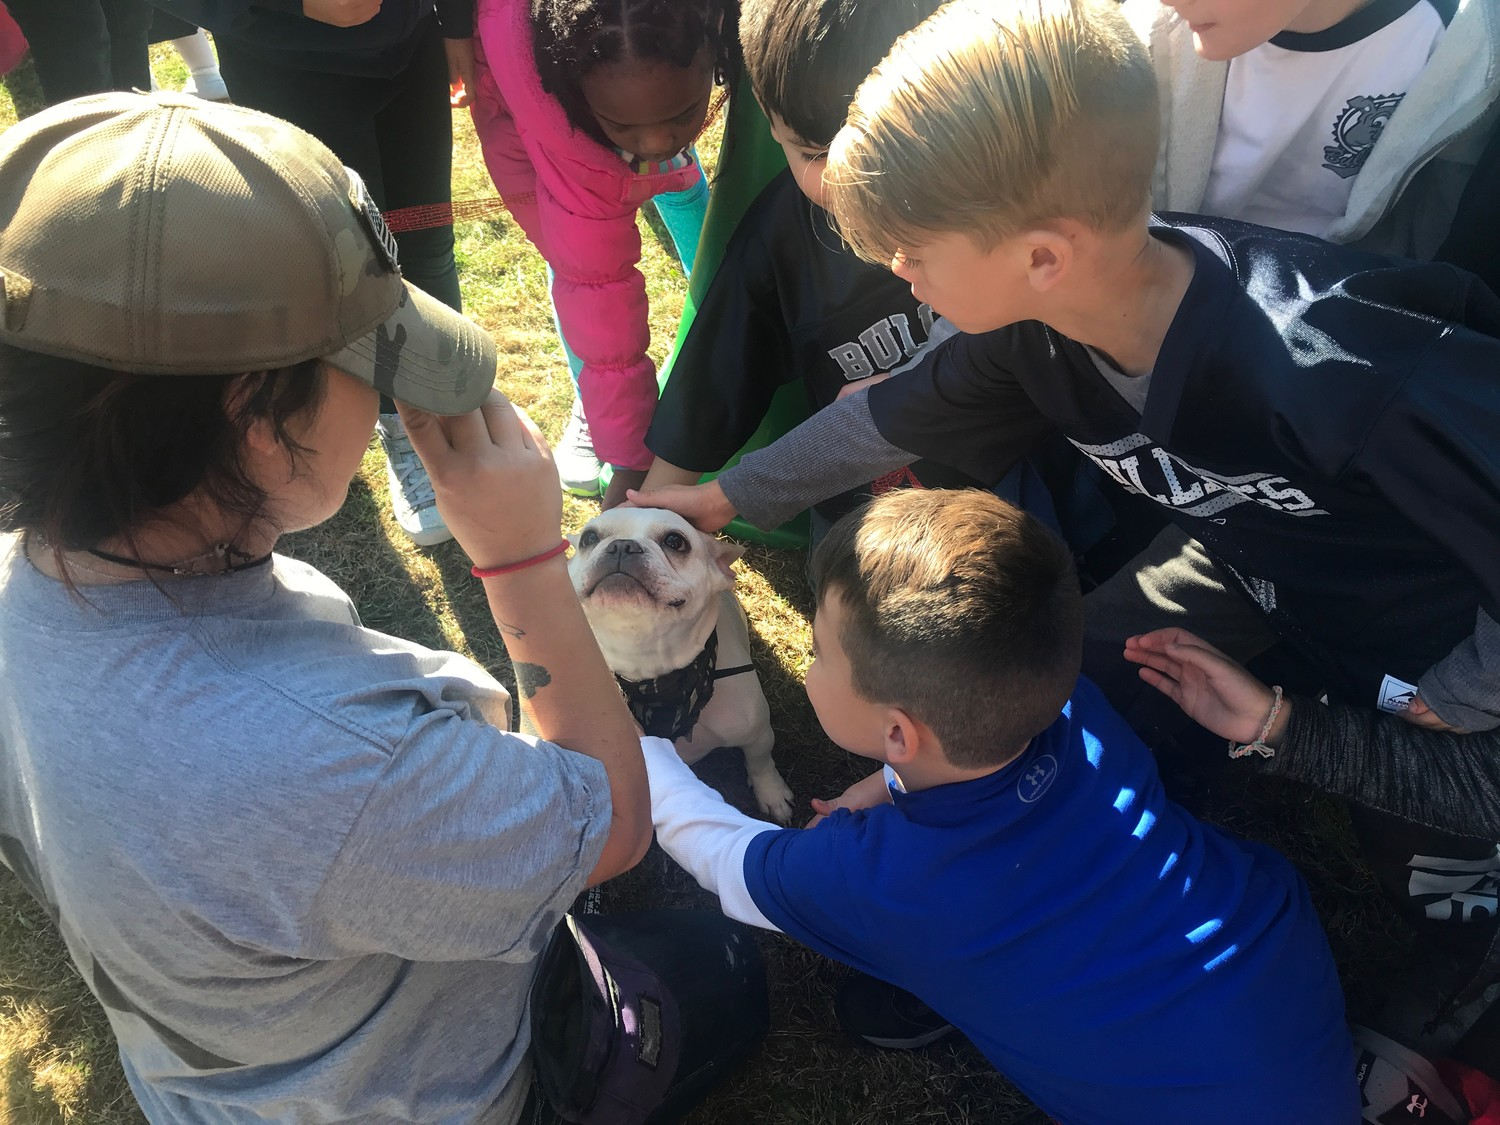 Boba, the French bulldog, received much loving attention from Ogden Elementary School students.